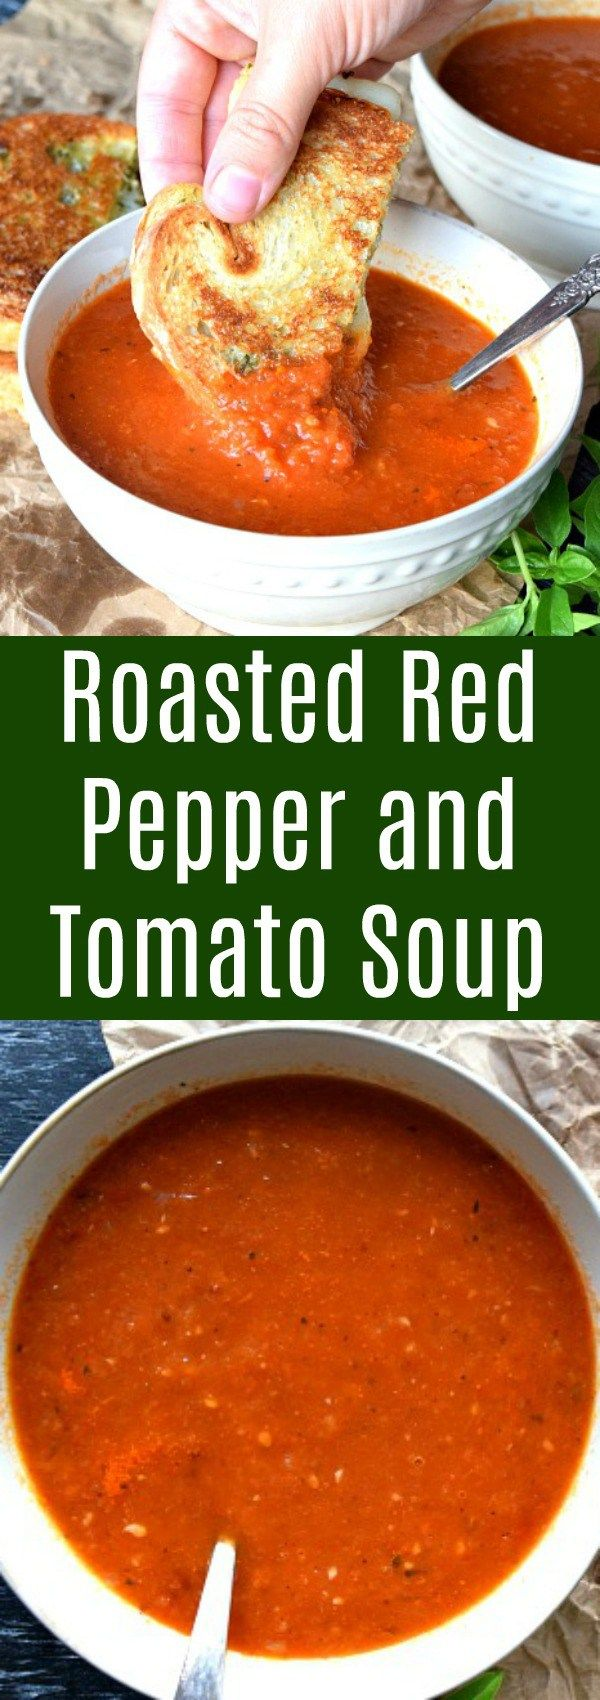 Roasted Red Pepper & Tomato Soup